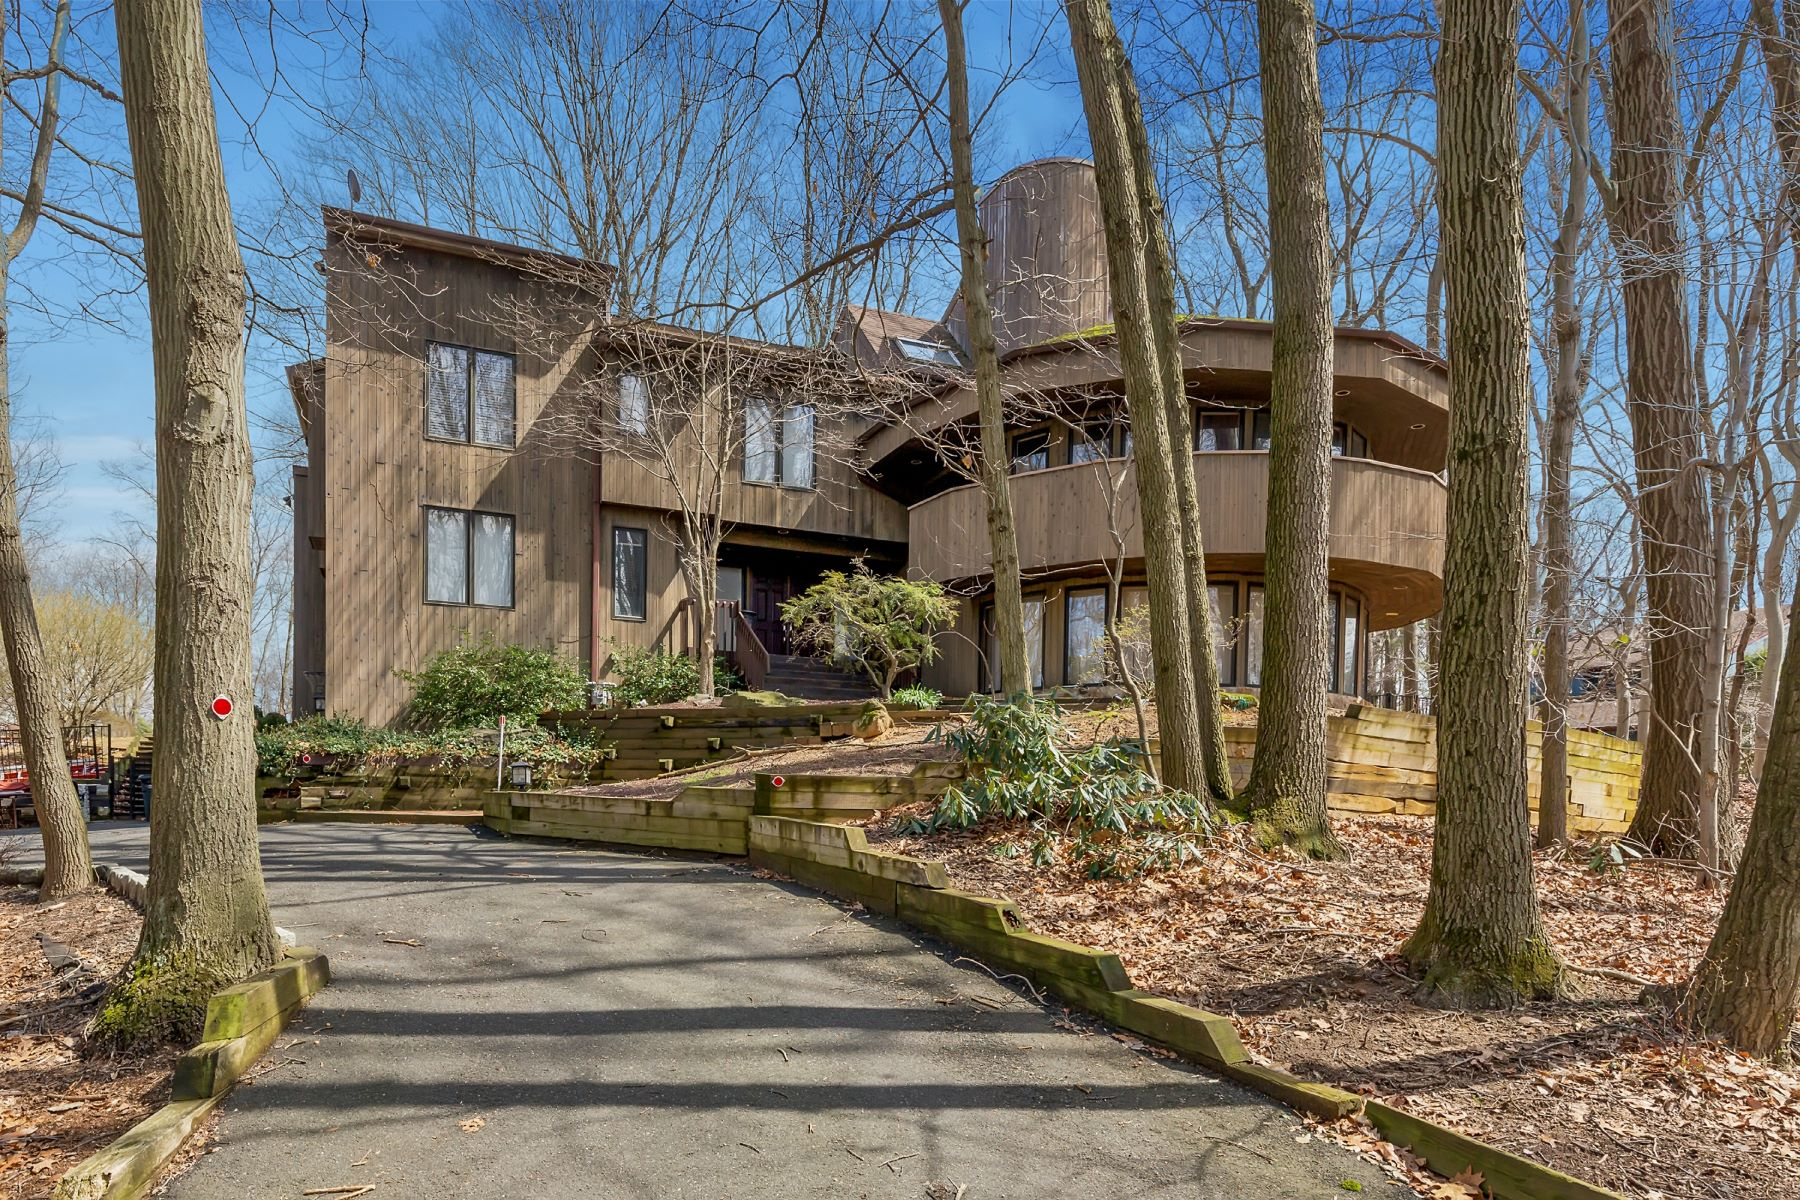 Single Family Home for Sale at 36 Stoney Brook Road Holmdel, New Jersey 07733 United States